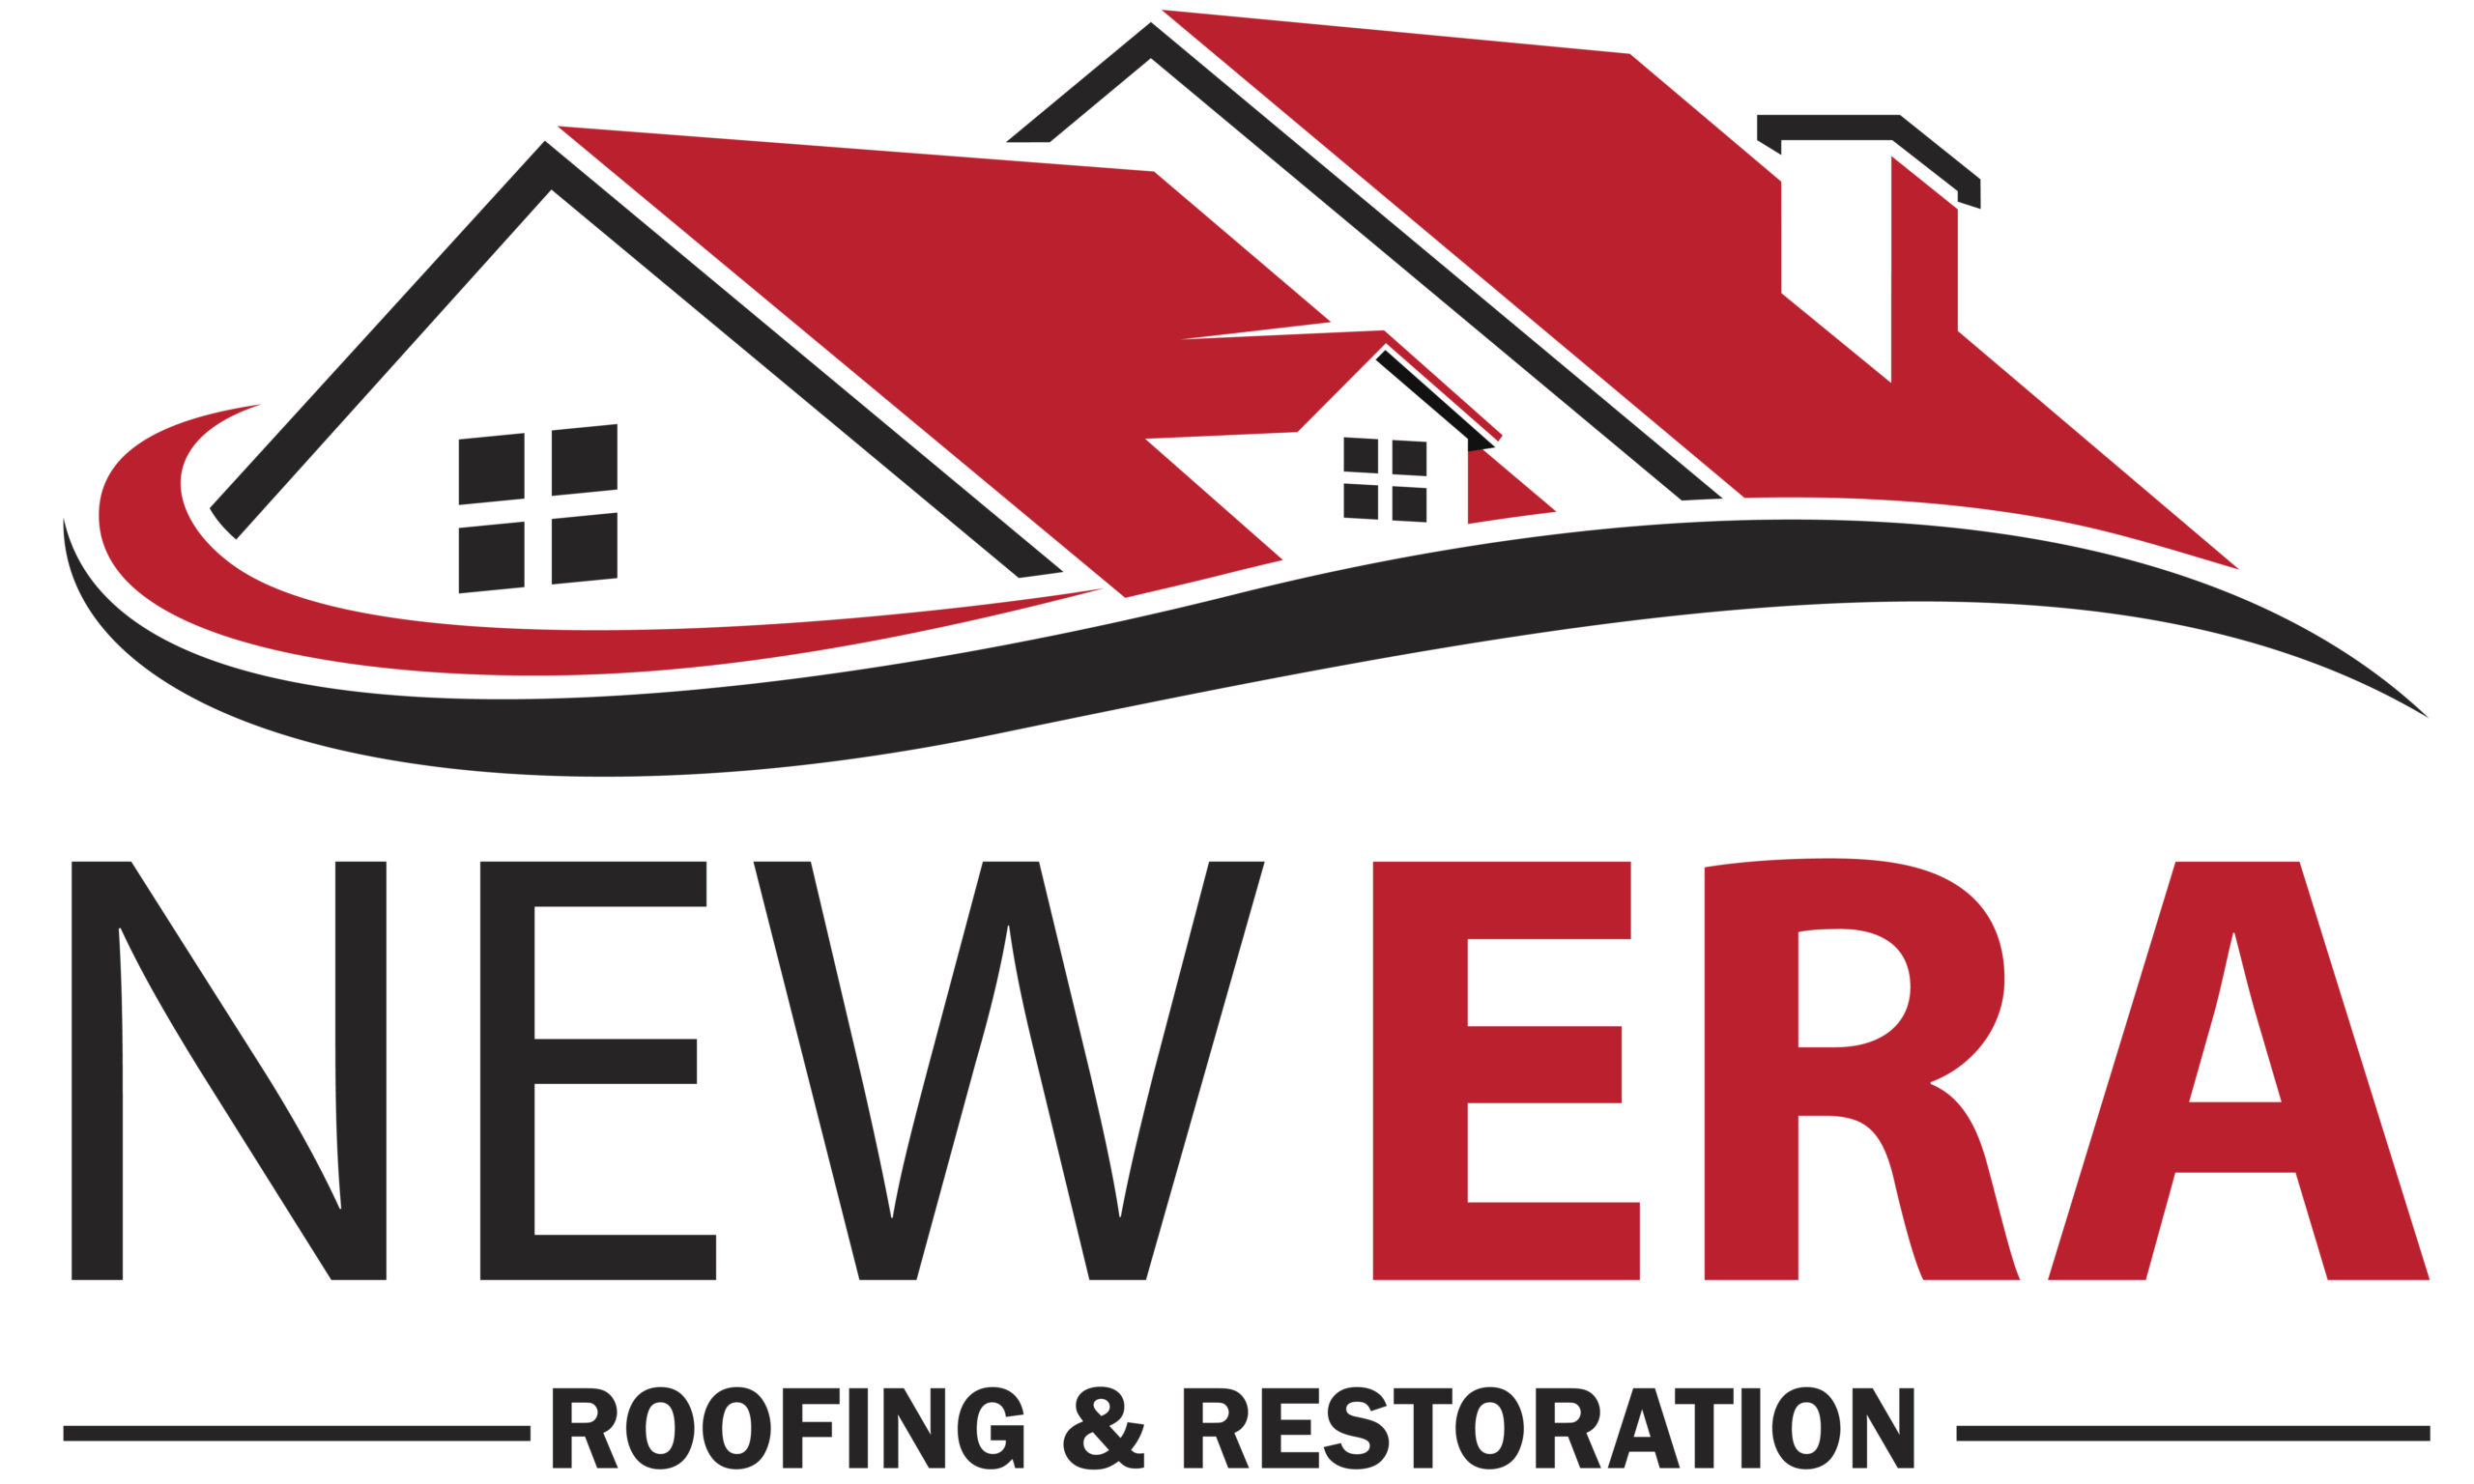 New Era Roofing & Restoration